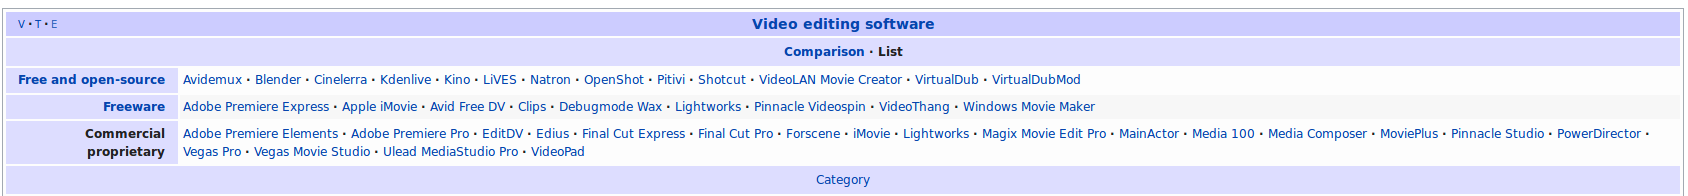 video editores wiki.png